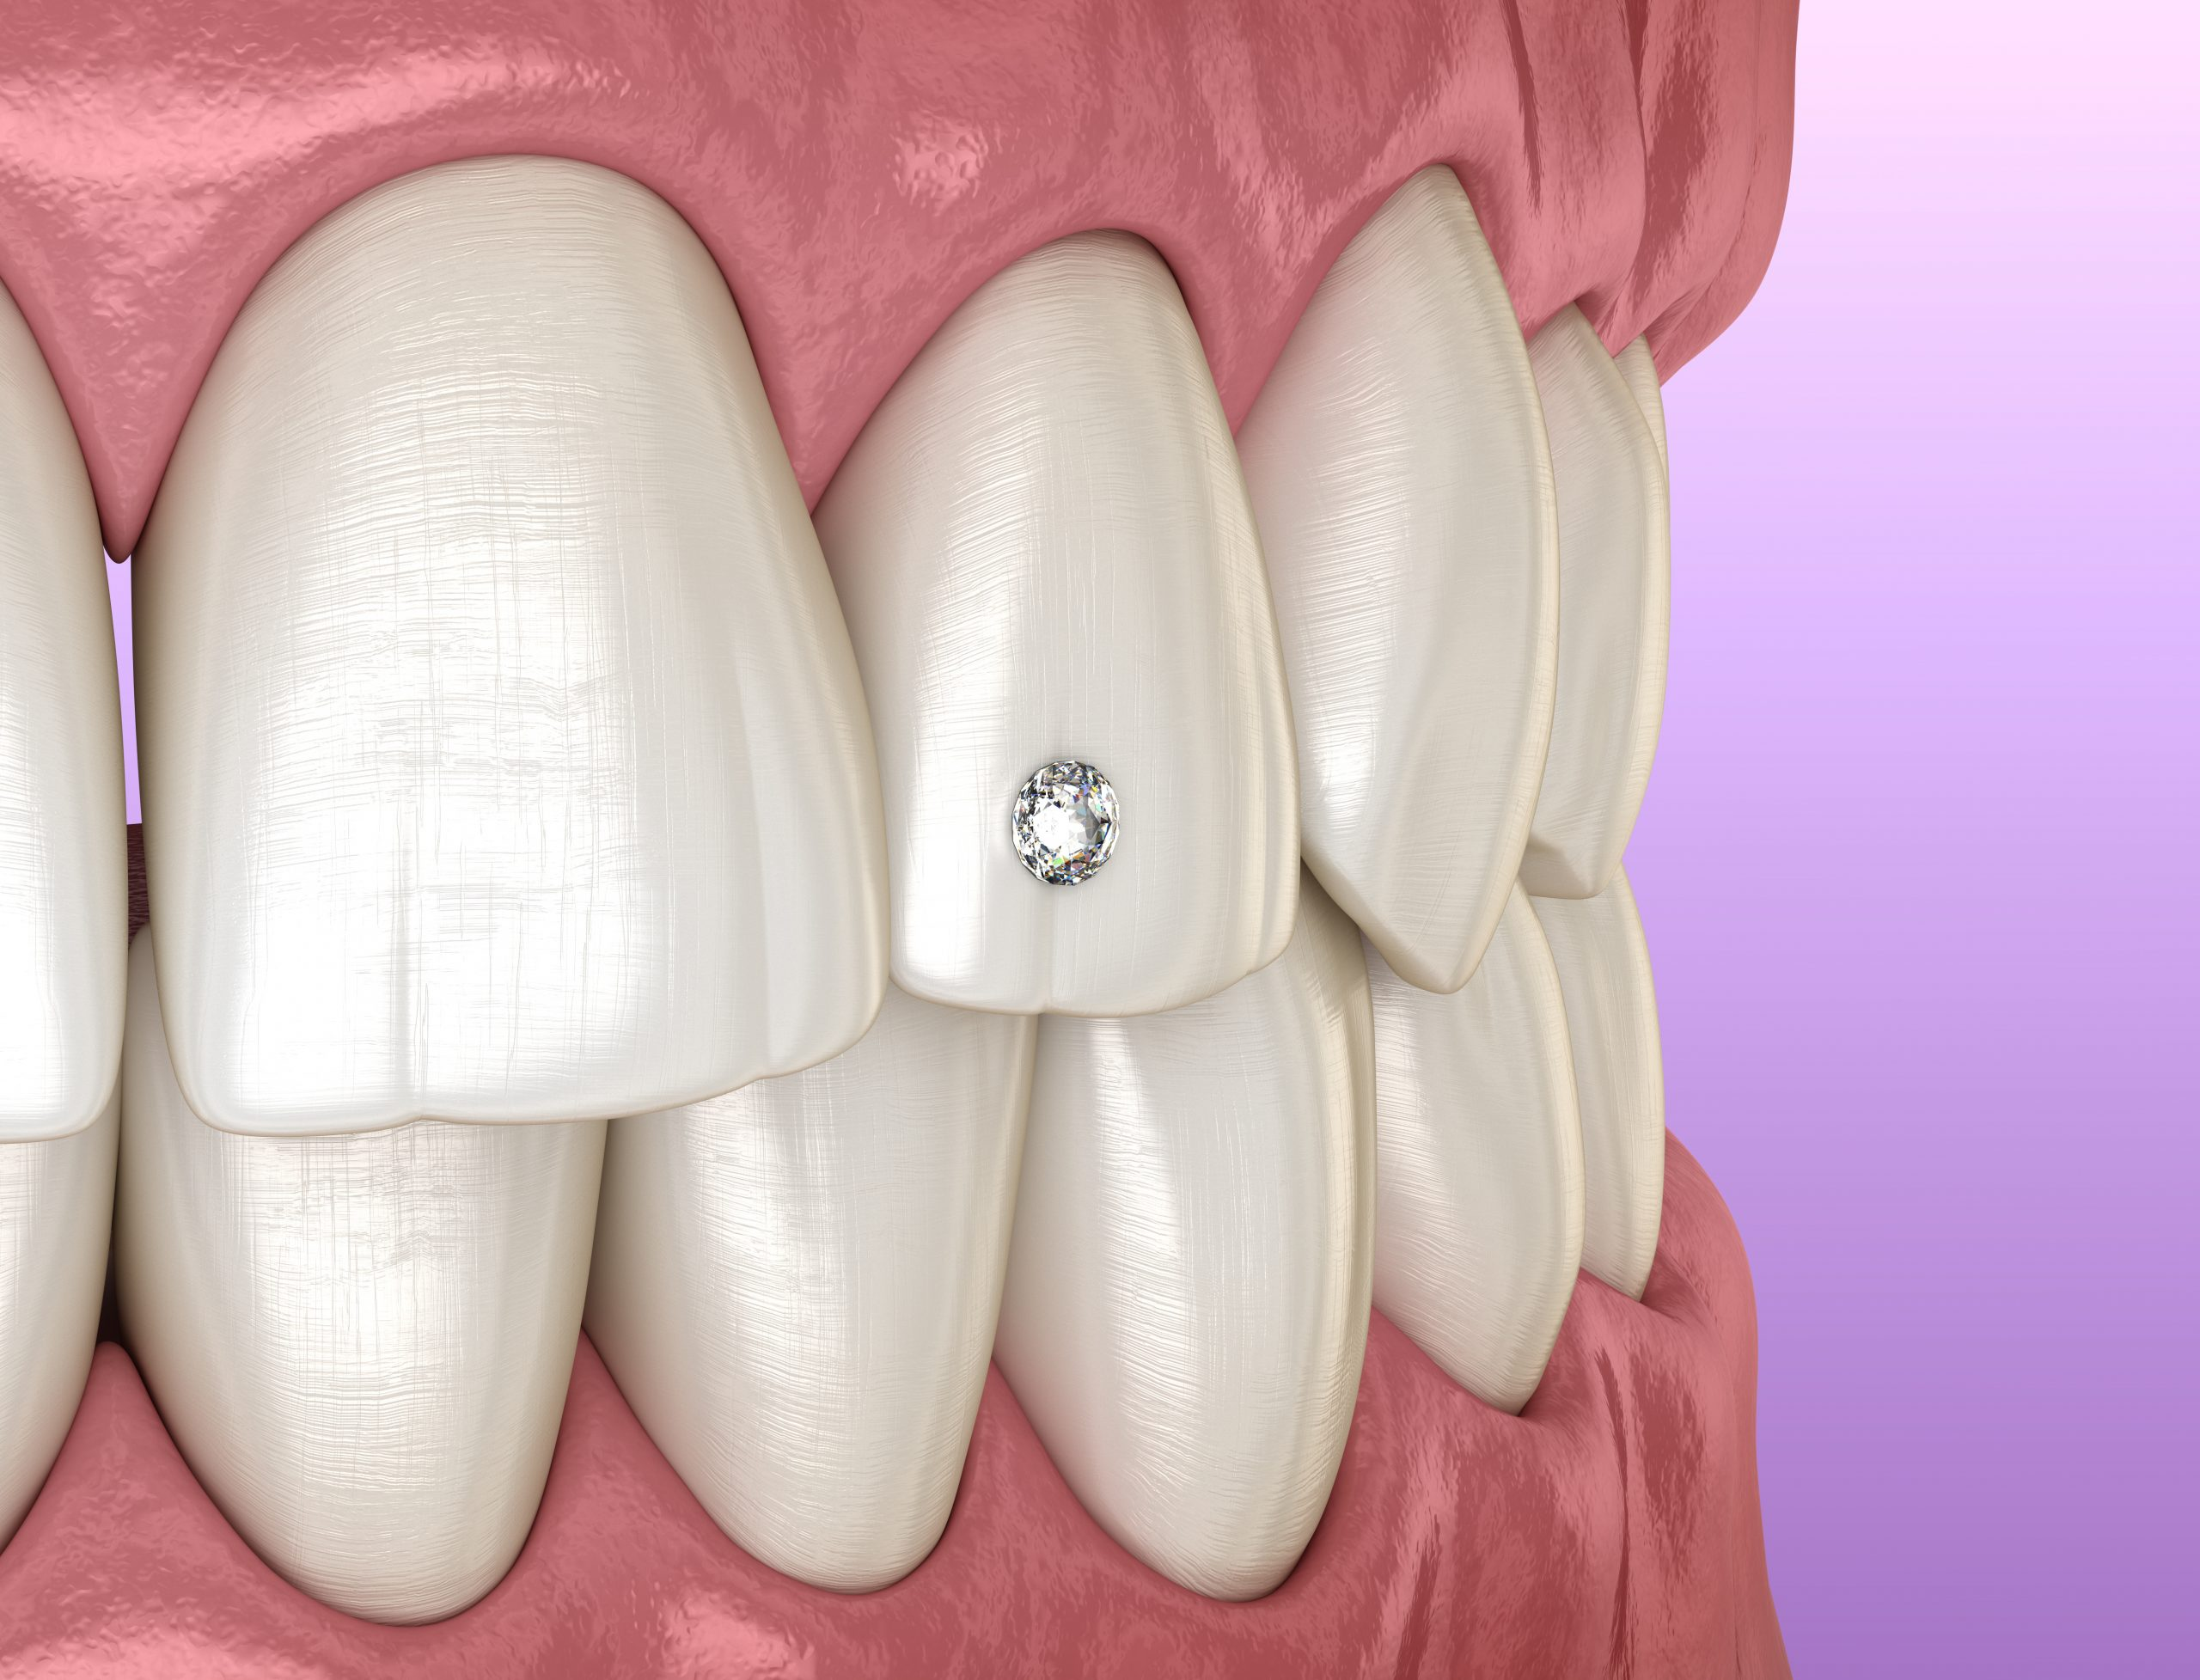 Tooth piercing by diamond, 3D illustration concept.